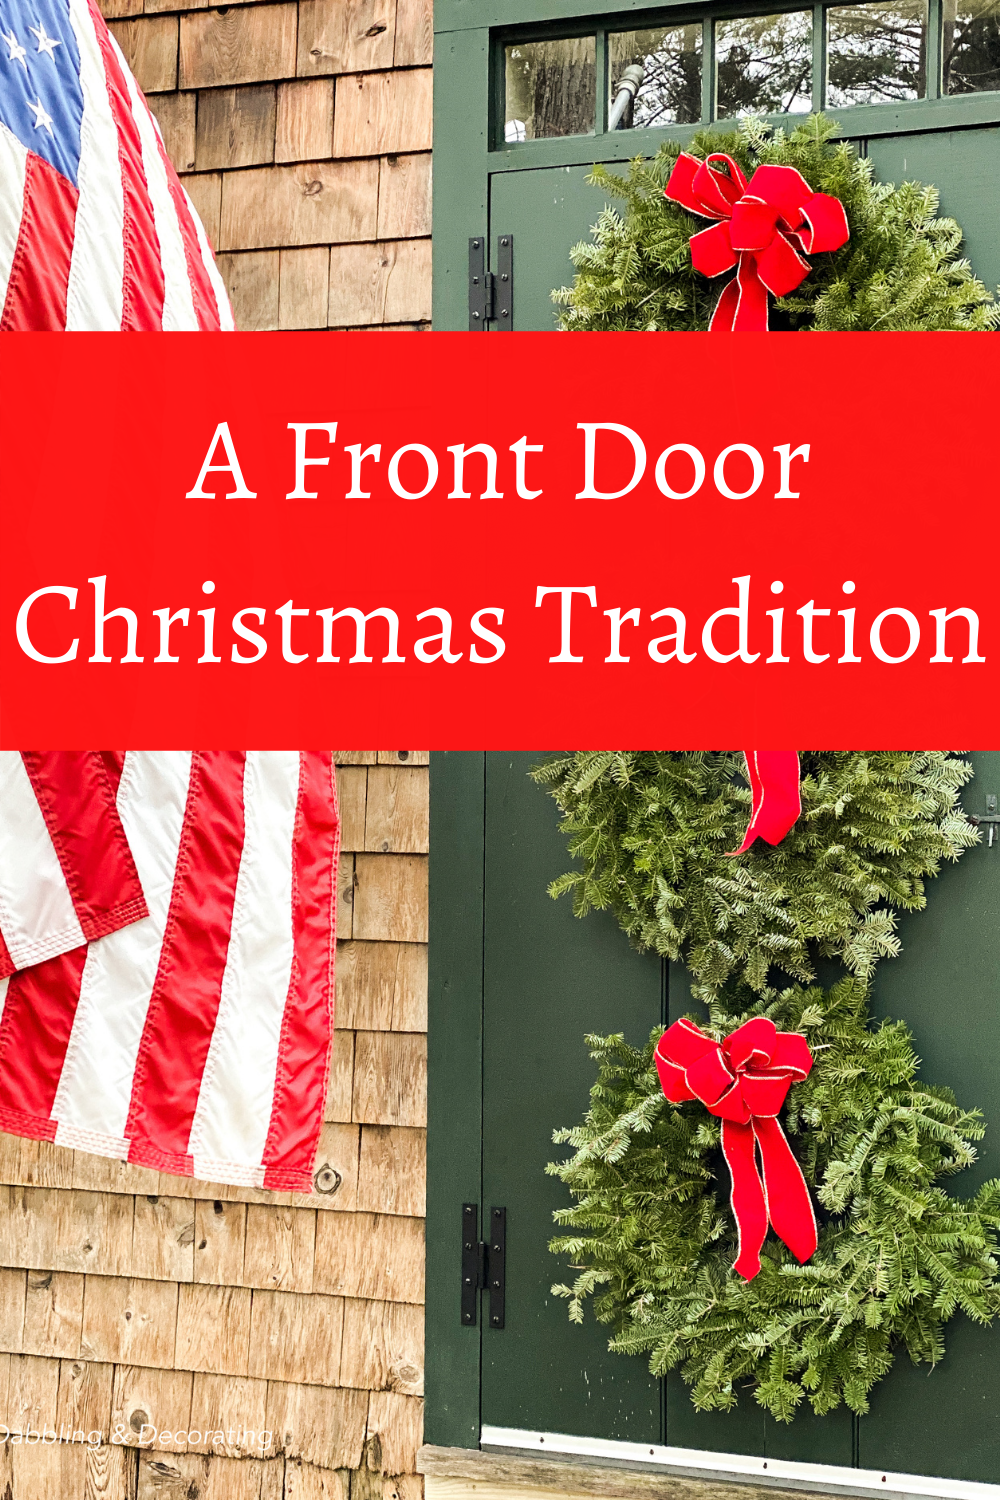 A Christmas Front Door Tradition